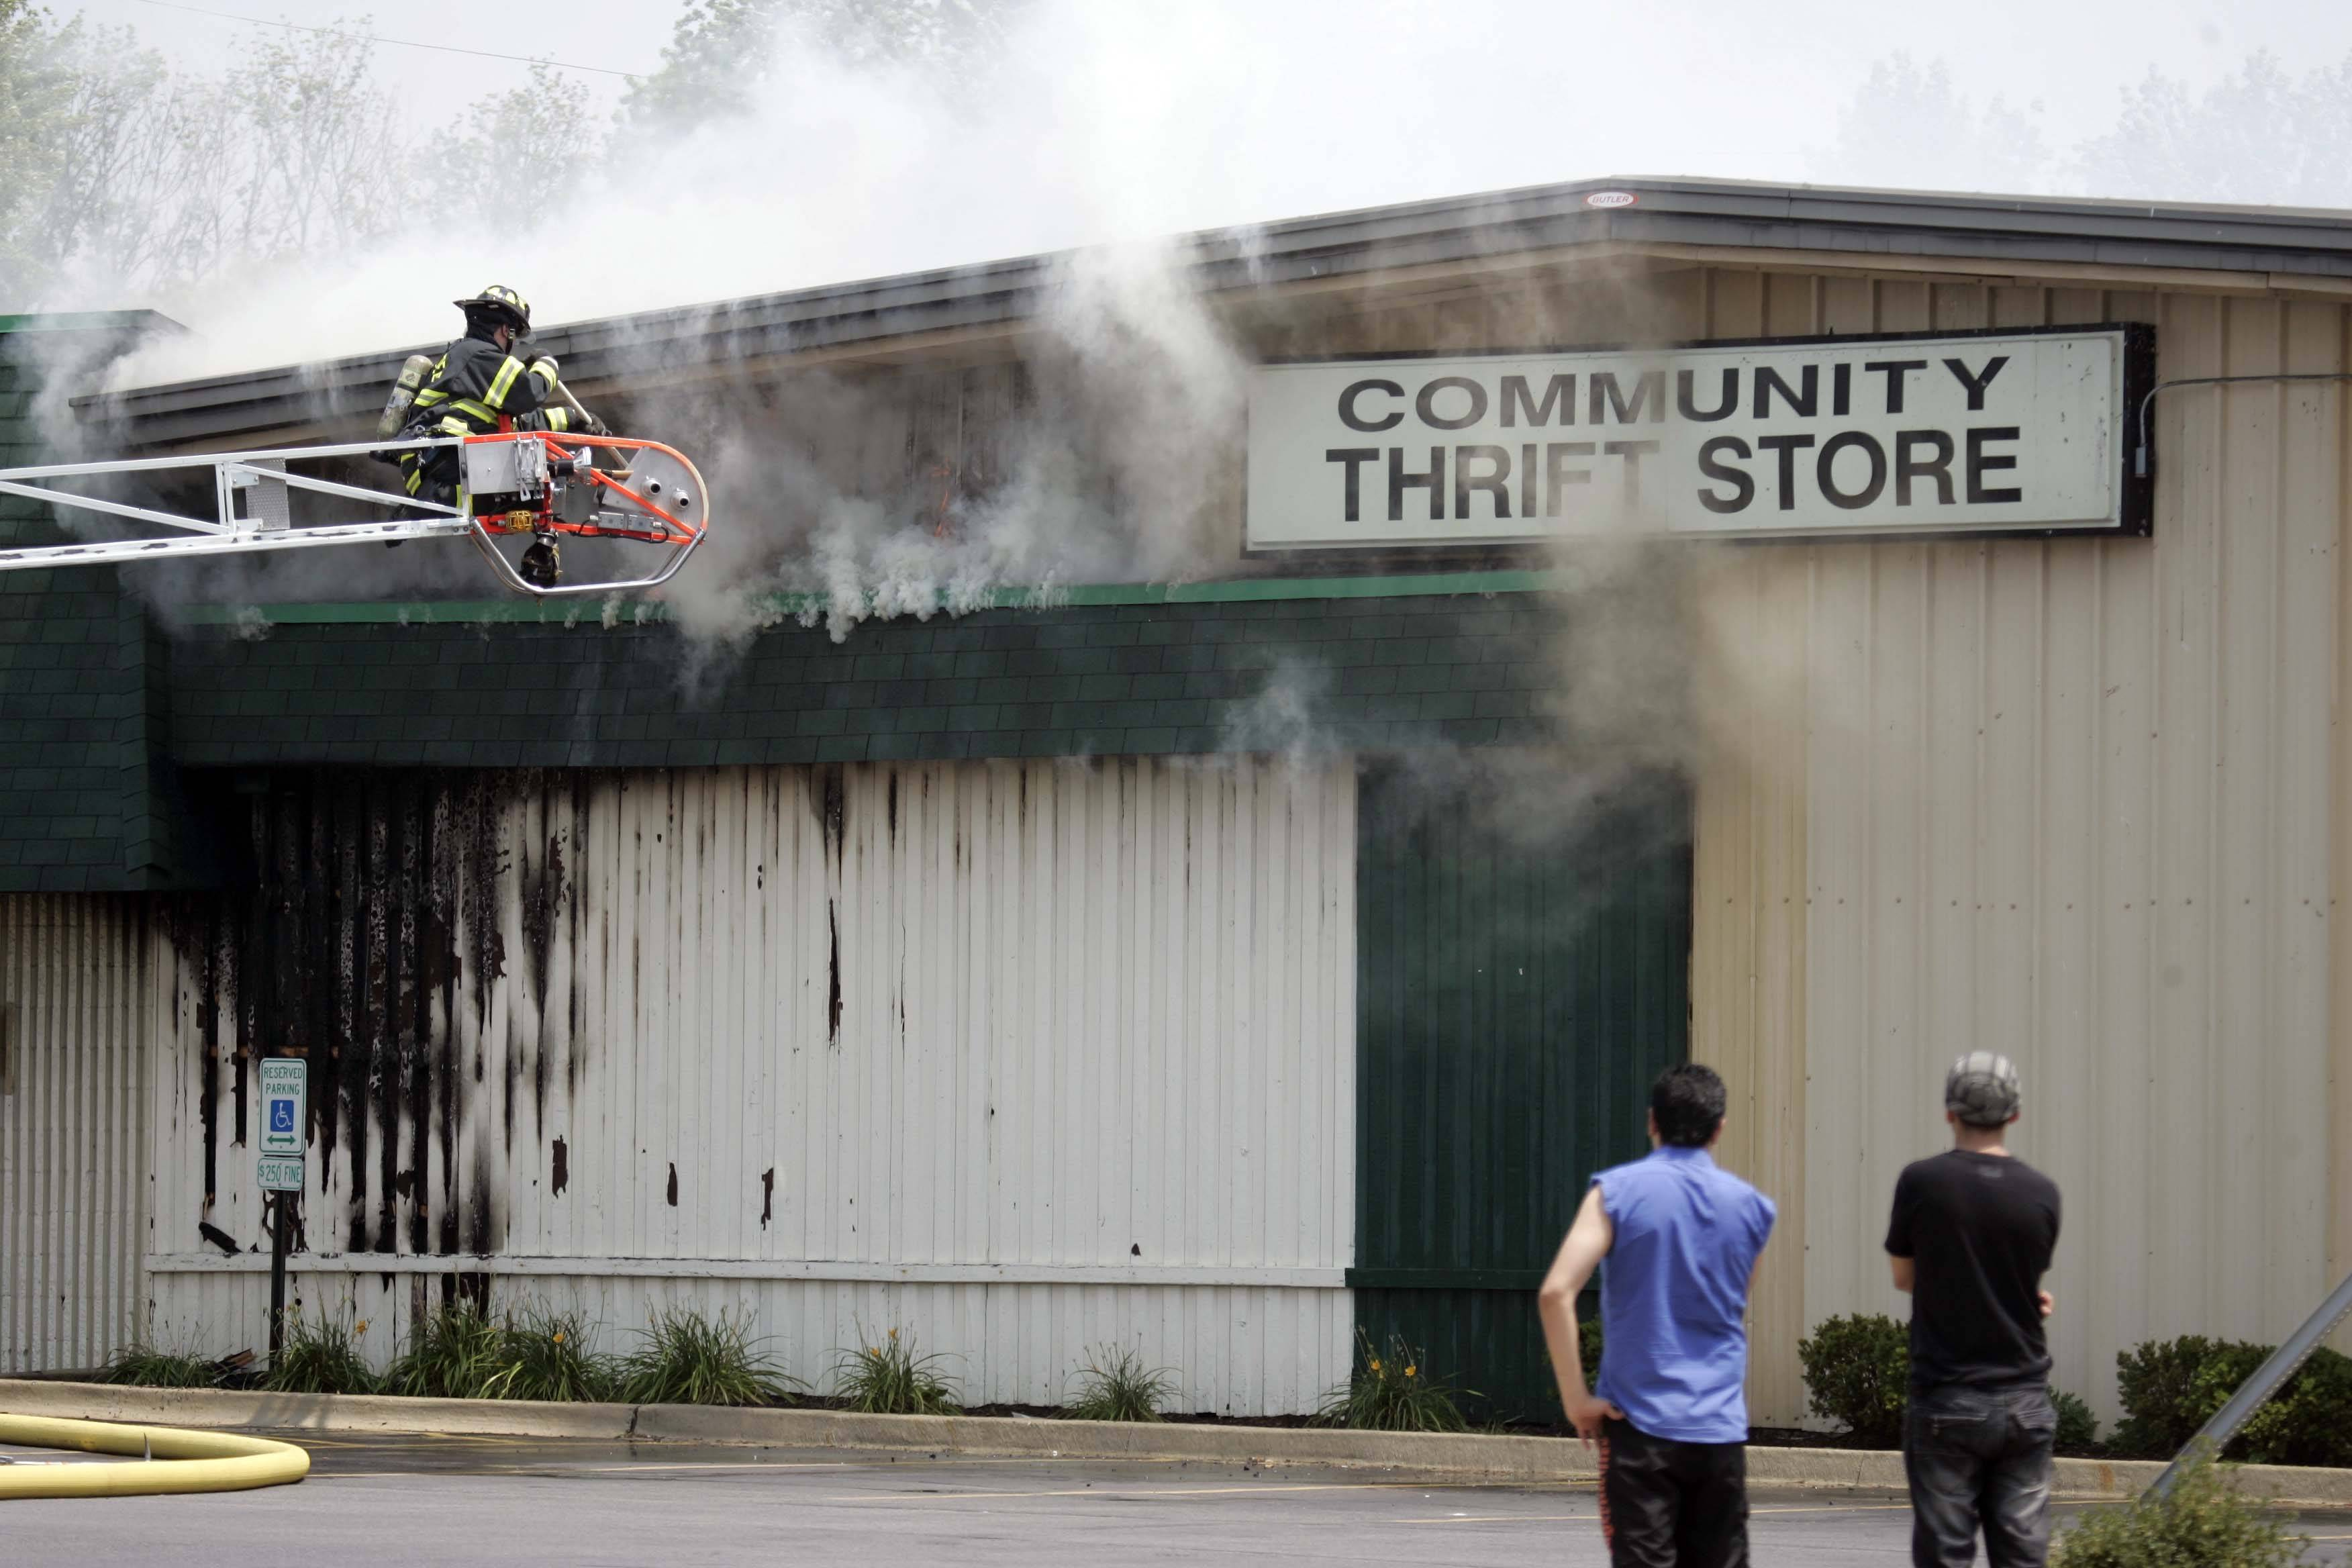 A West Dundee firefighter works to open the roof line as East Dundee, Carpentersville and several other departments responded to a fire two years ago at the Community Thrift Store in East Dundee.